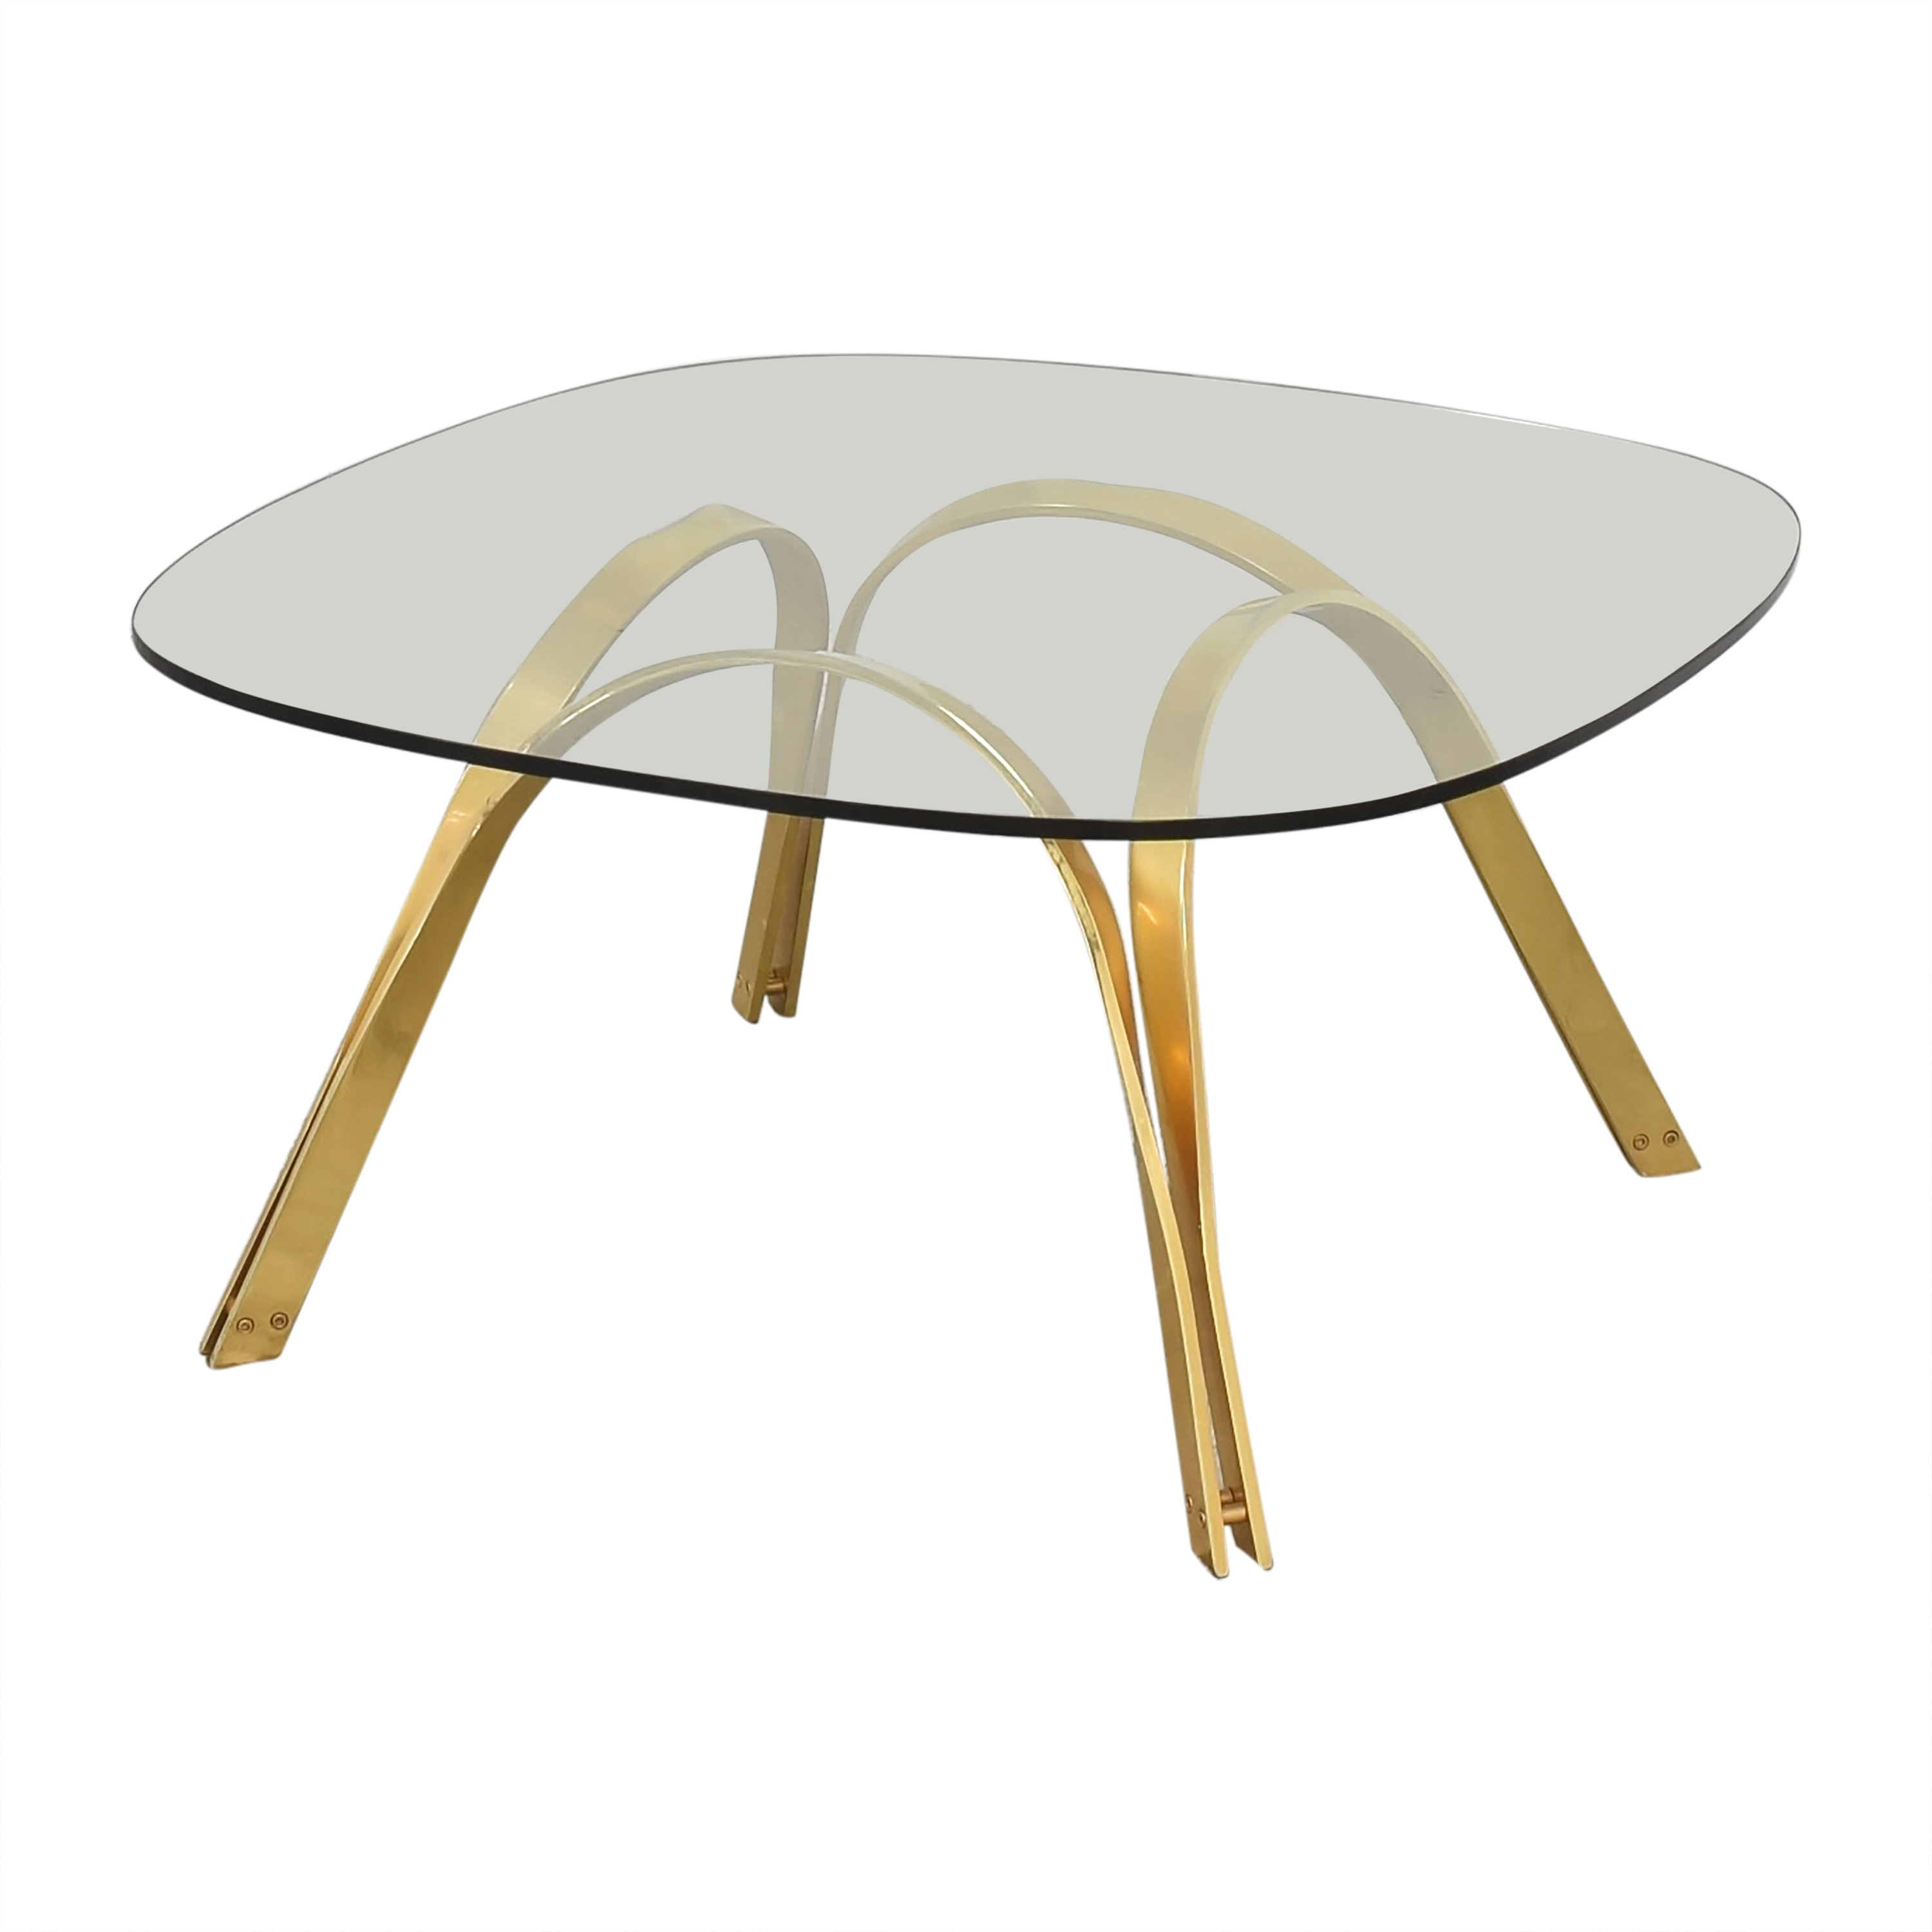 Vintage Style Coffee Table / Tables